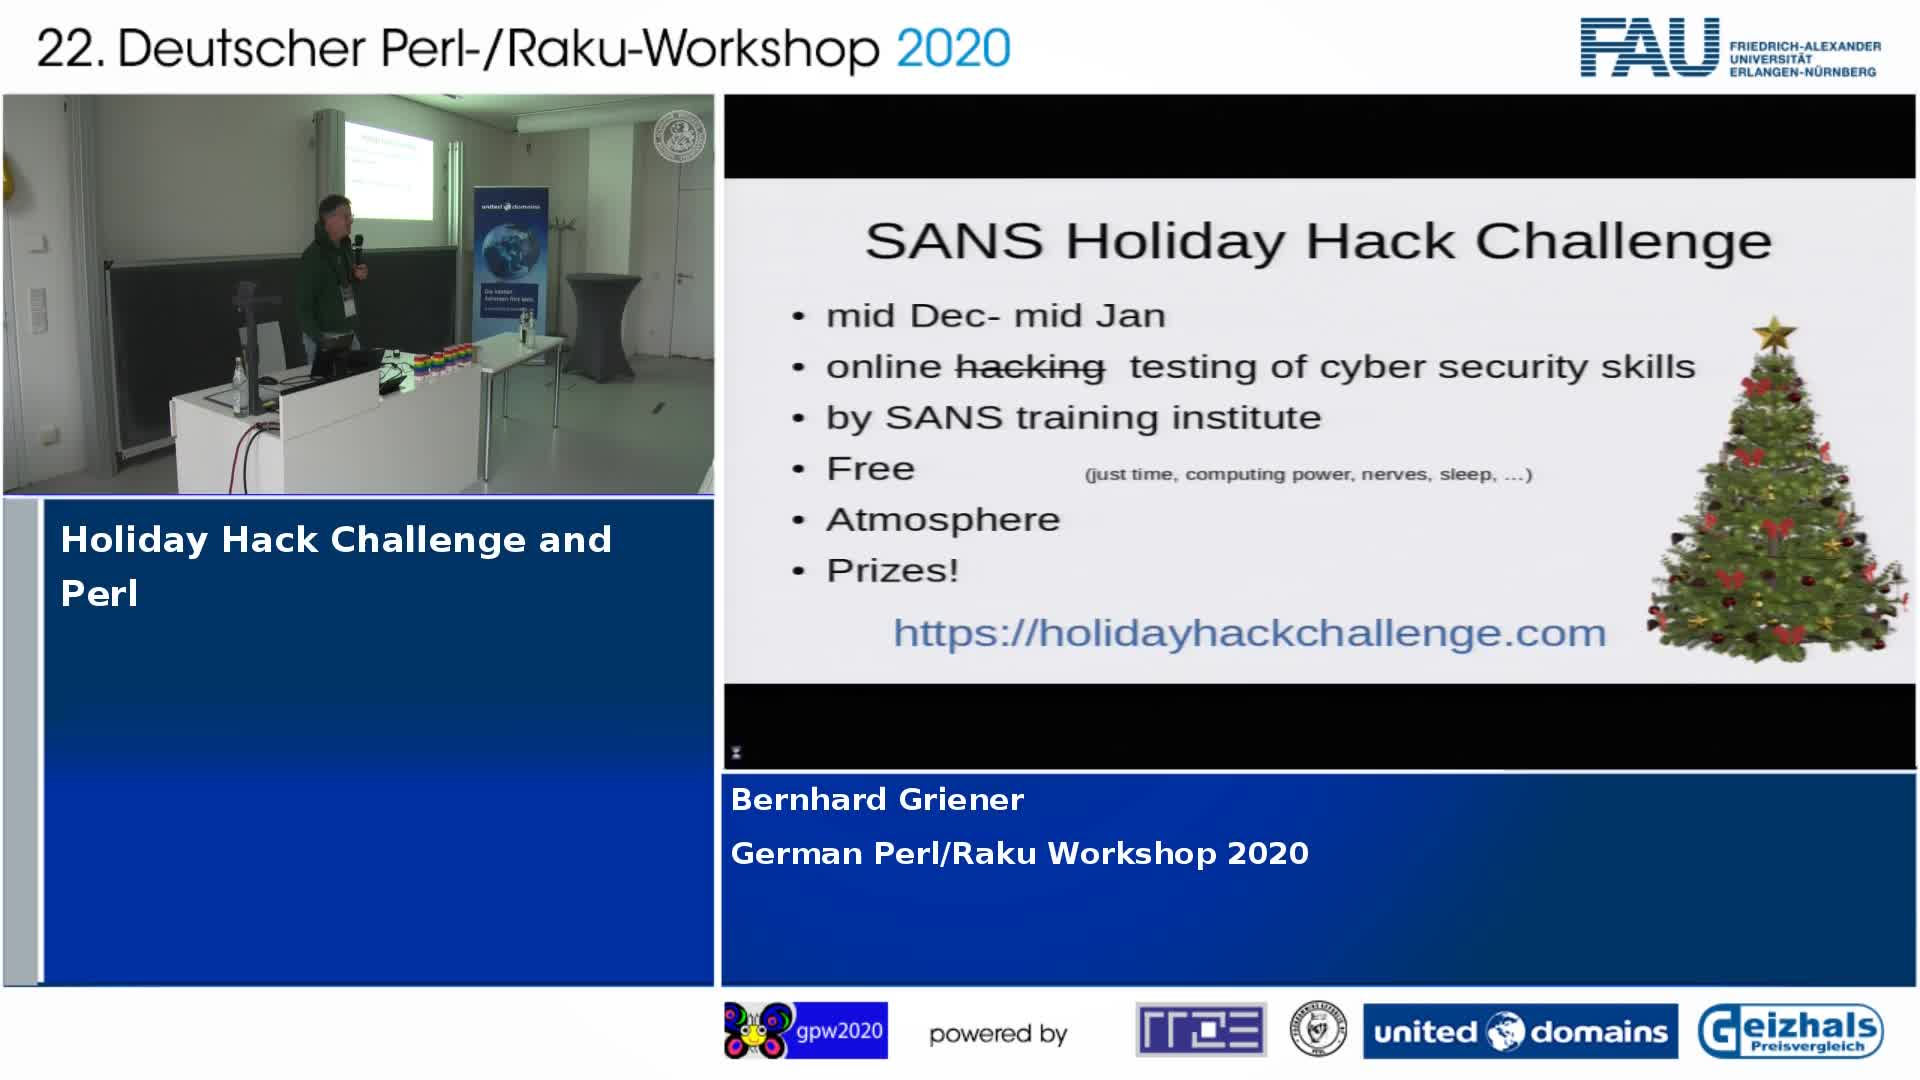 Holiday Hack Challenge and Perl preview image